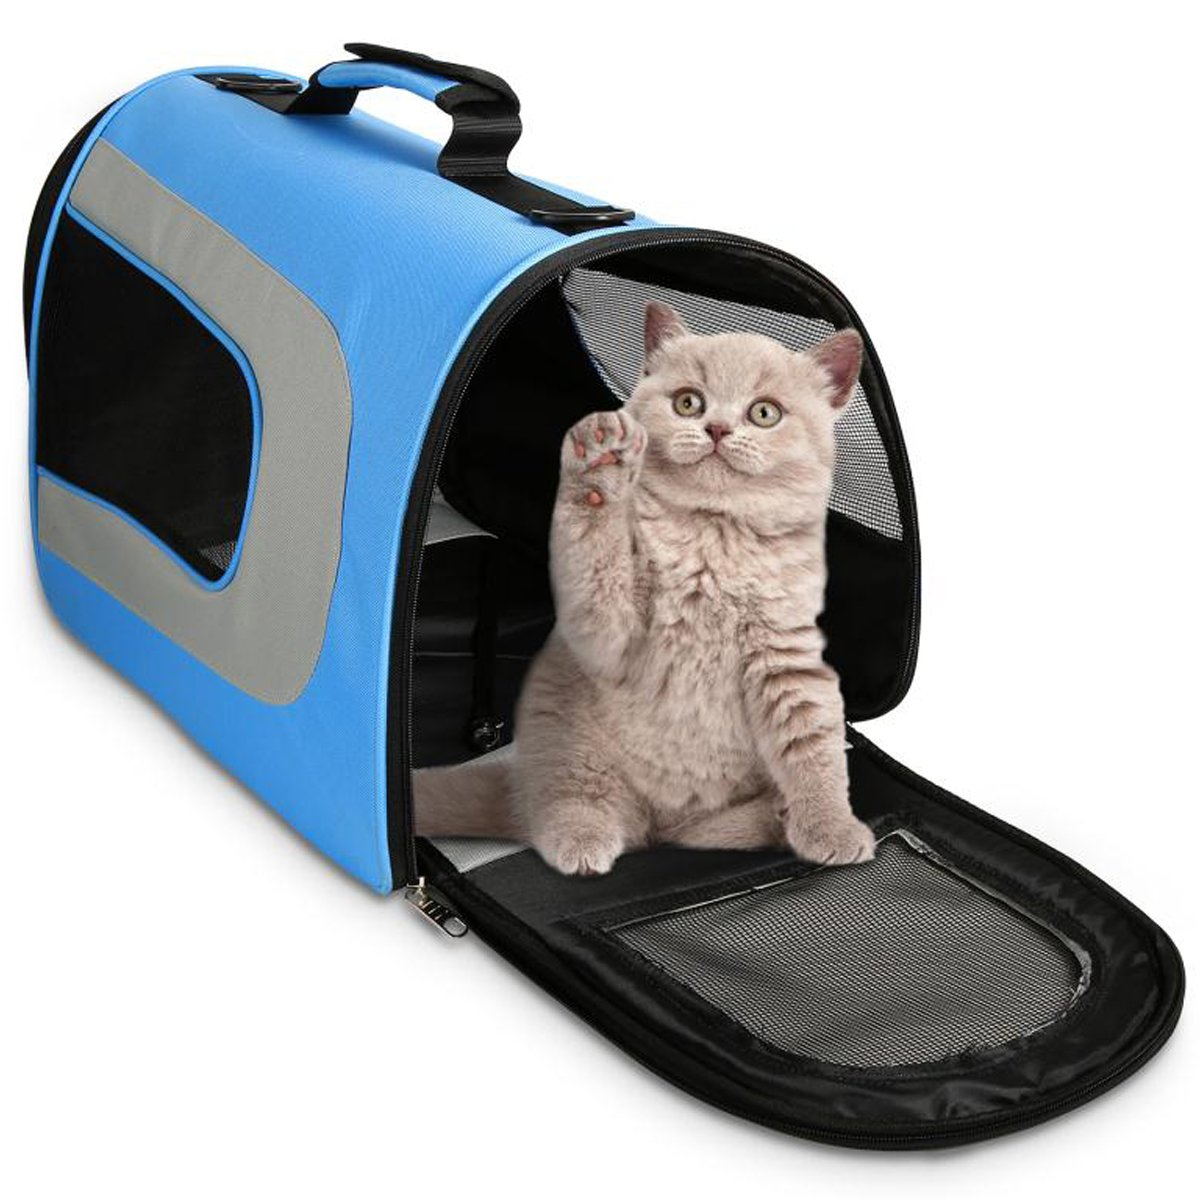 WOT I Soft Sided Pet Carrier, Cat Carrier Dog Carrier Airline Approved Pet Carrier Suitable for Small Dogs and Cats, Medium Cats and Dogs, Puppy, Kittens, Small Animals, Travel Bag, Blue